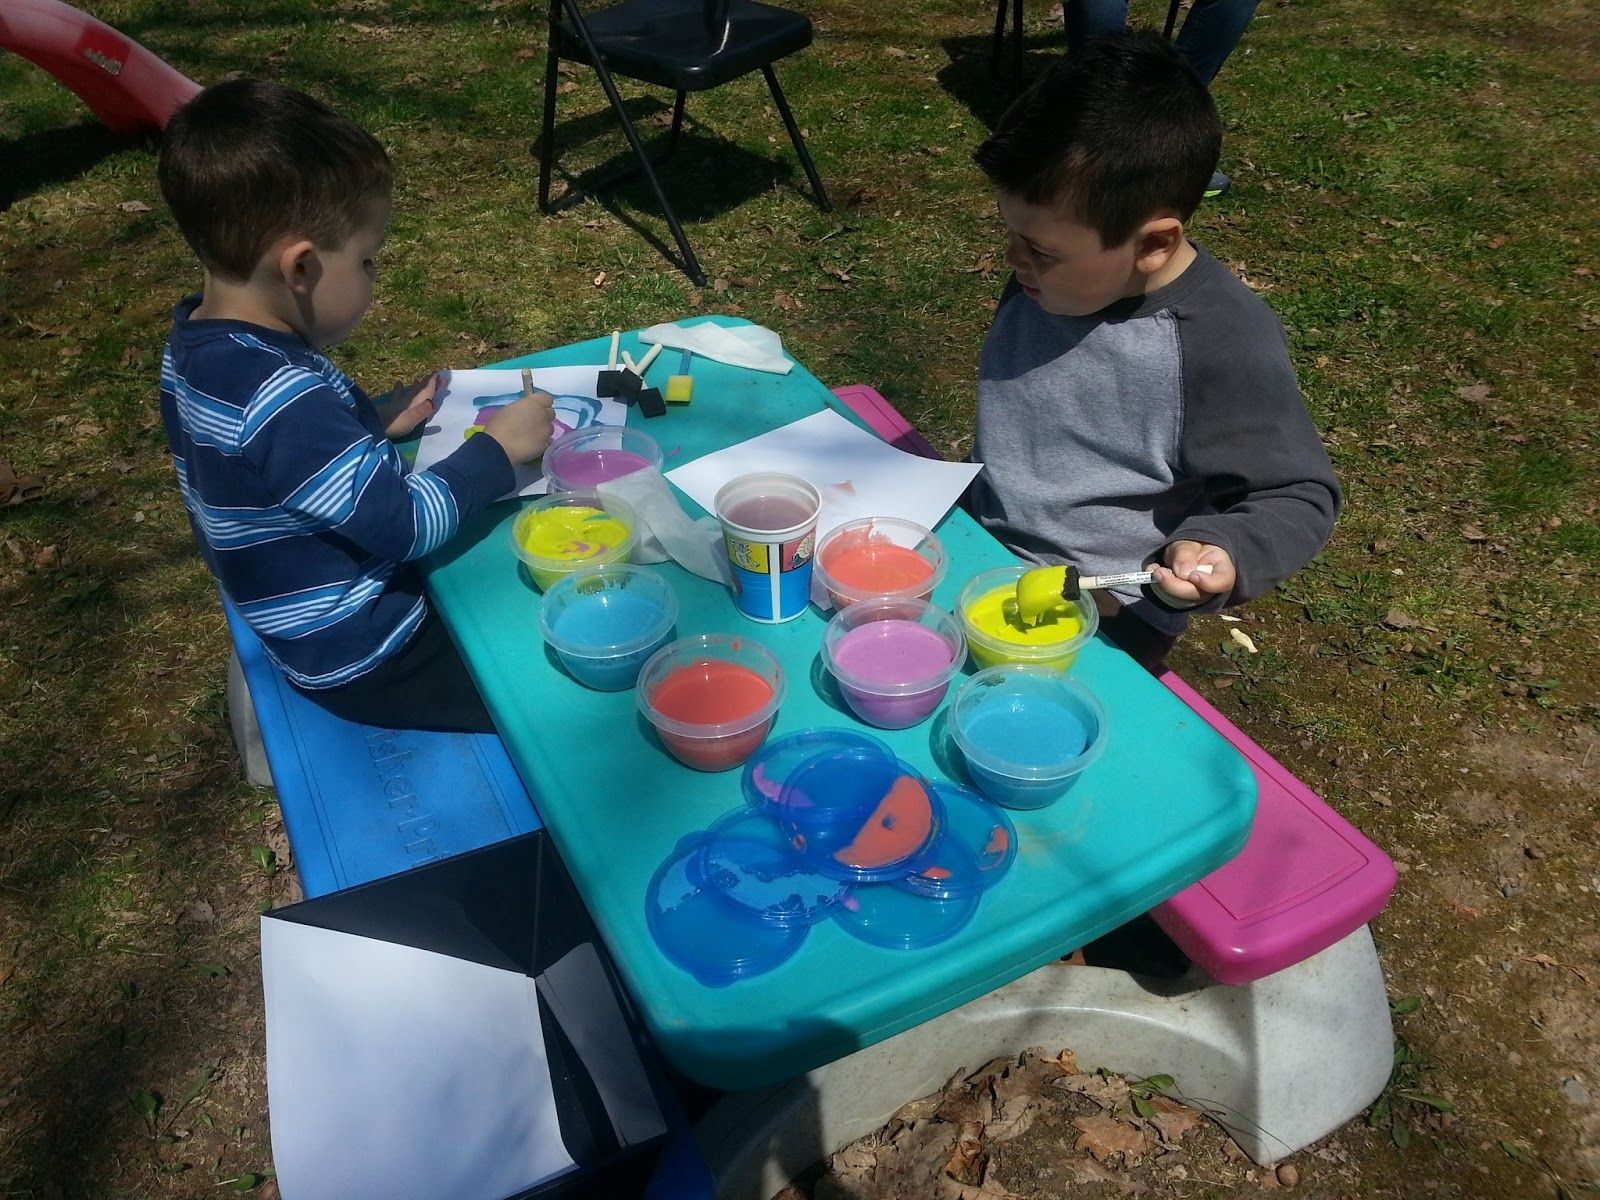 Children At Play: Fun with Homemade Paint